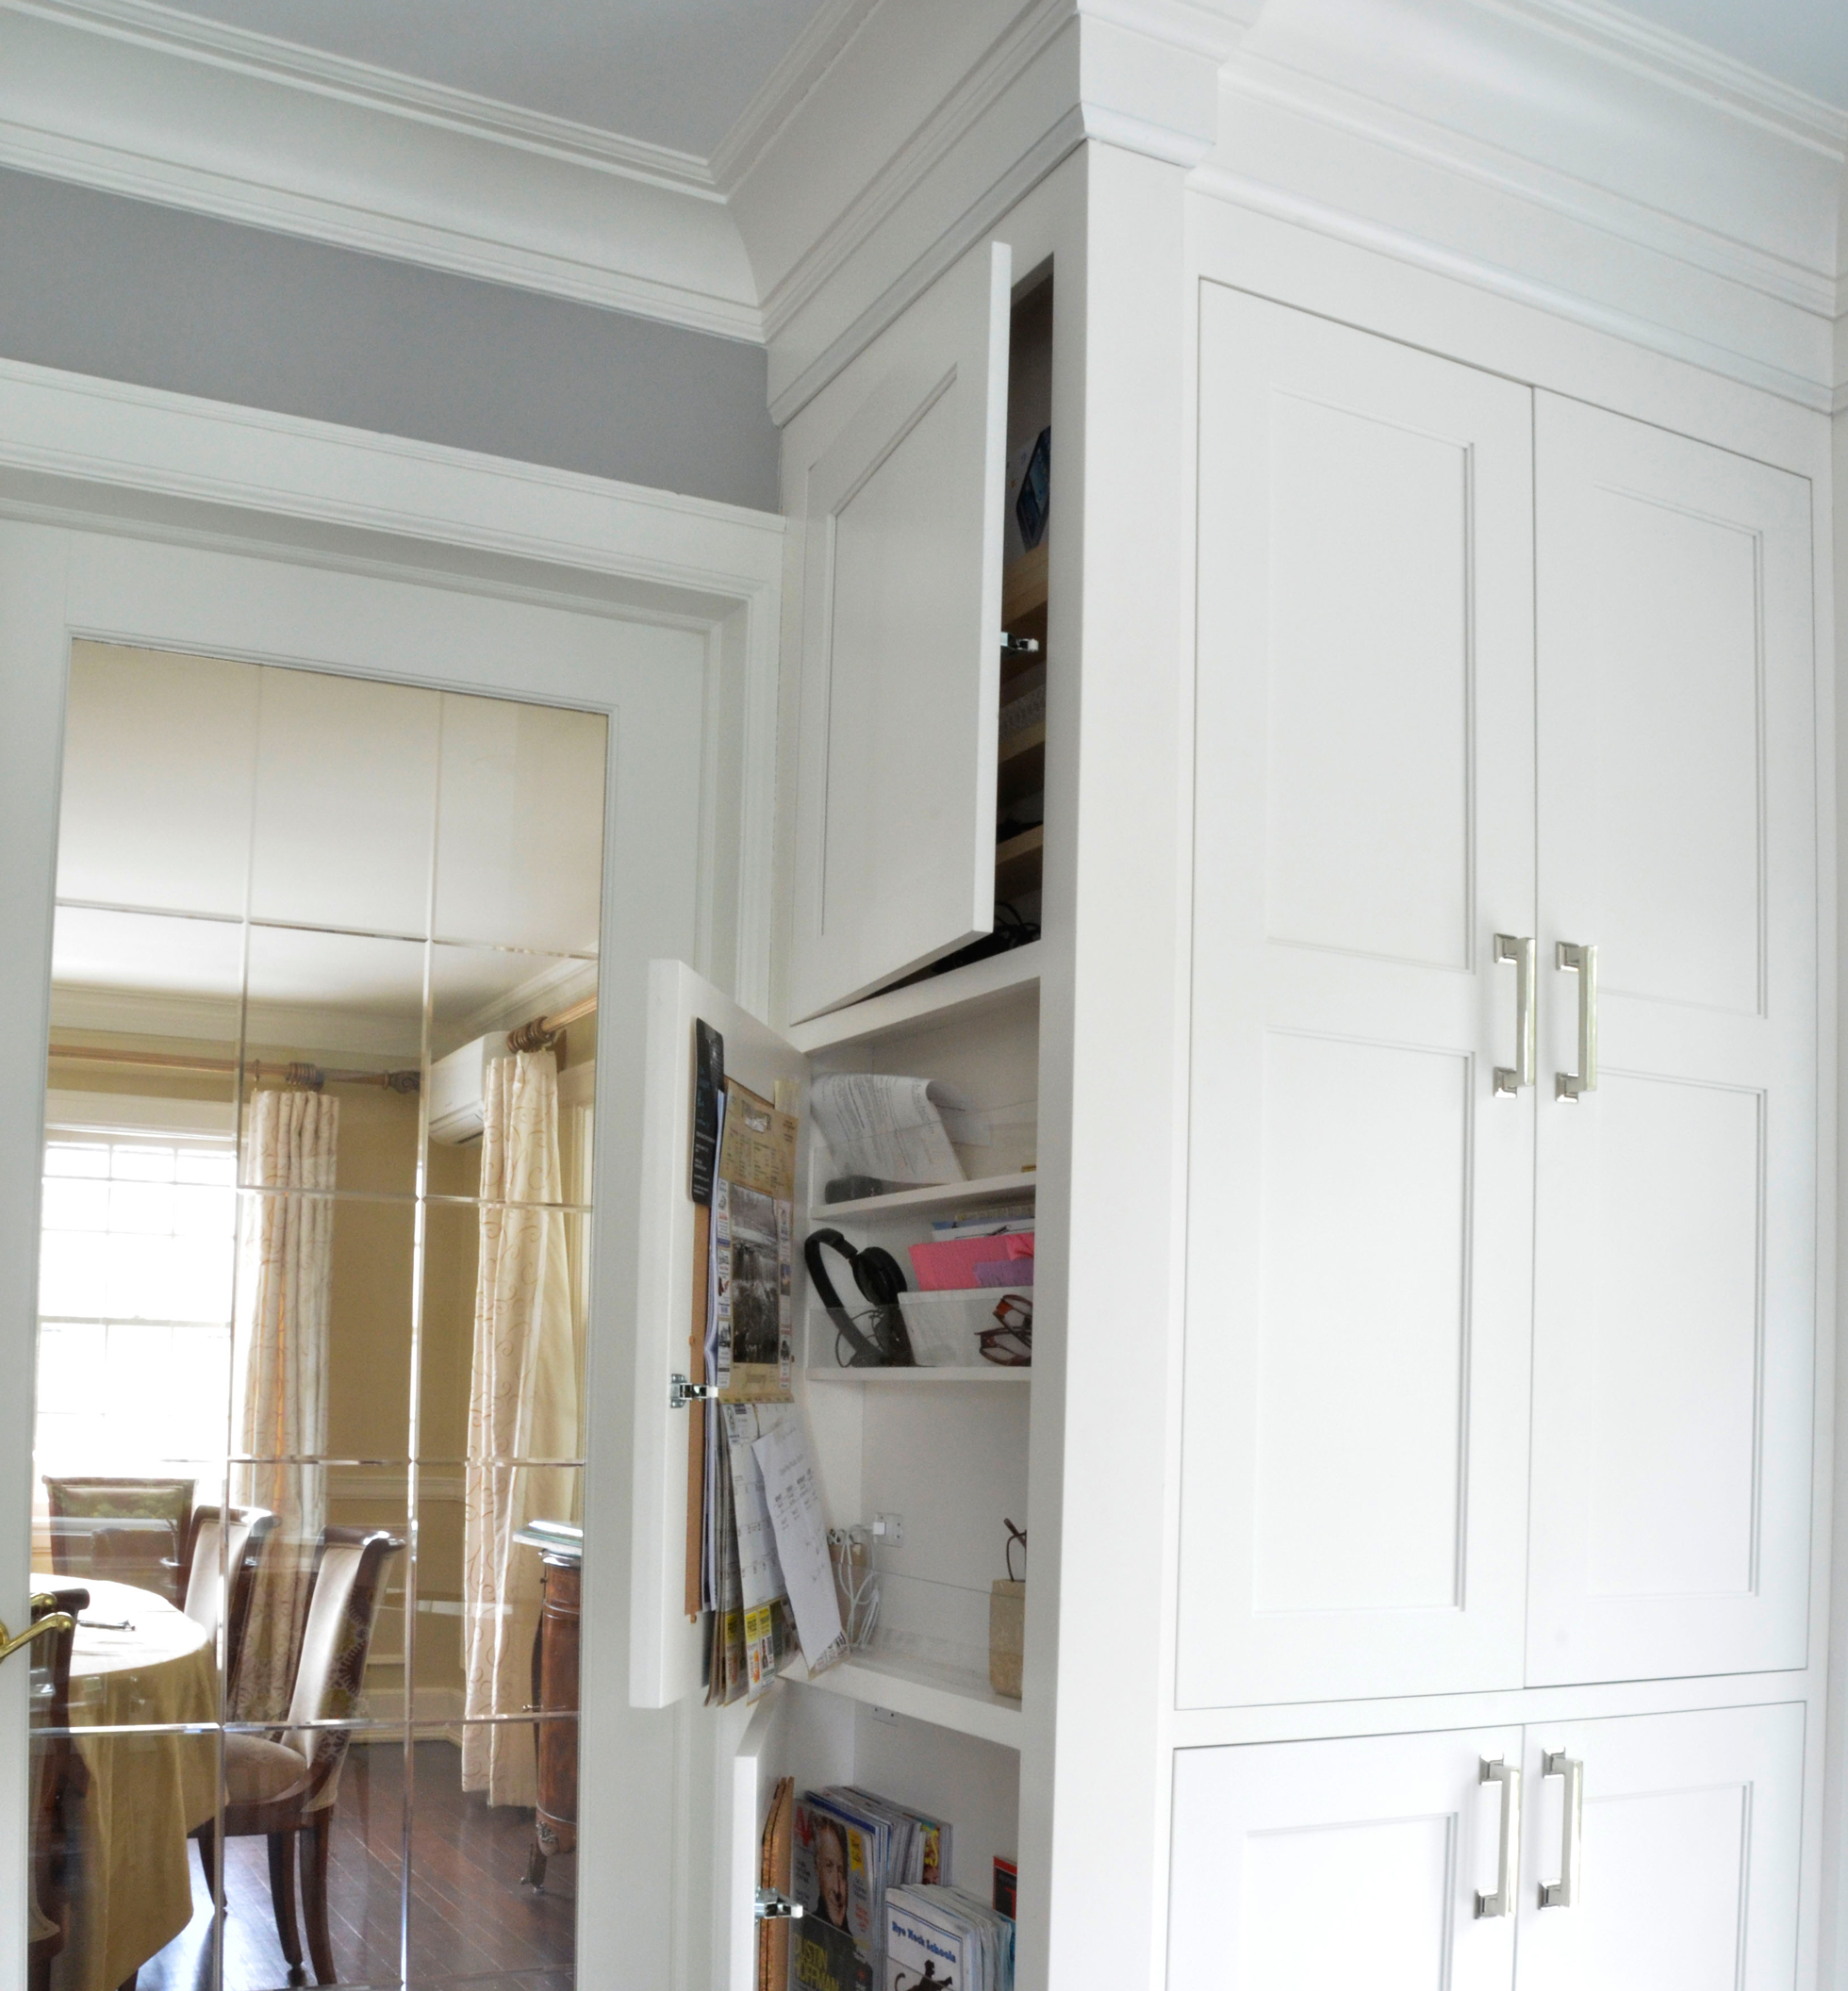 White cabinets conceal storage in a kitchen